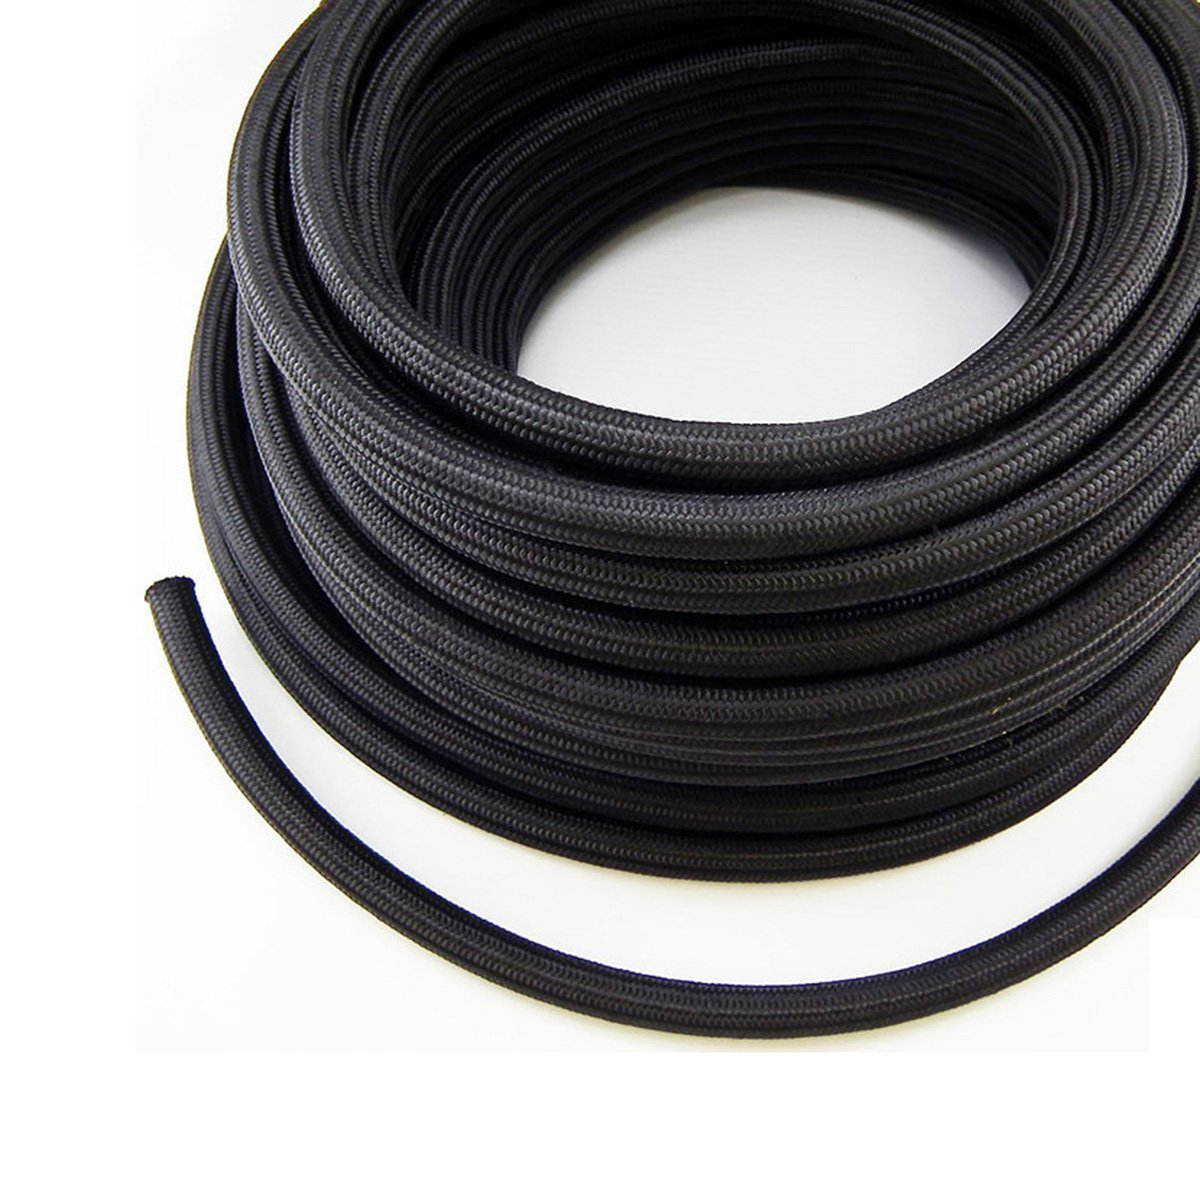 theBlueStone 10FT -6AN Nylon Braided Fuel Line Hose for 3/8'' Tube Size